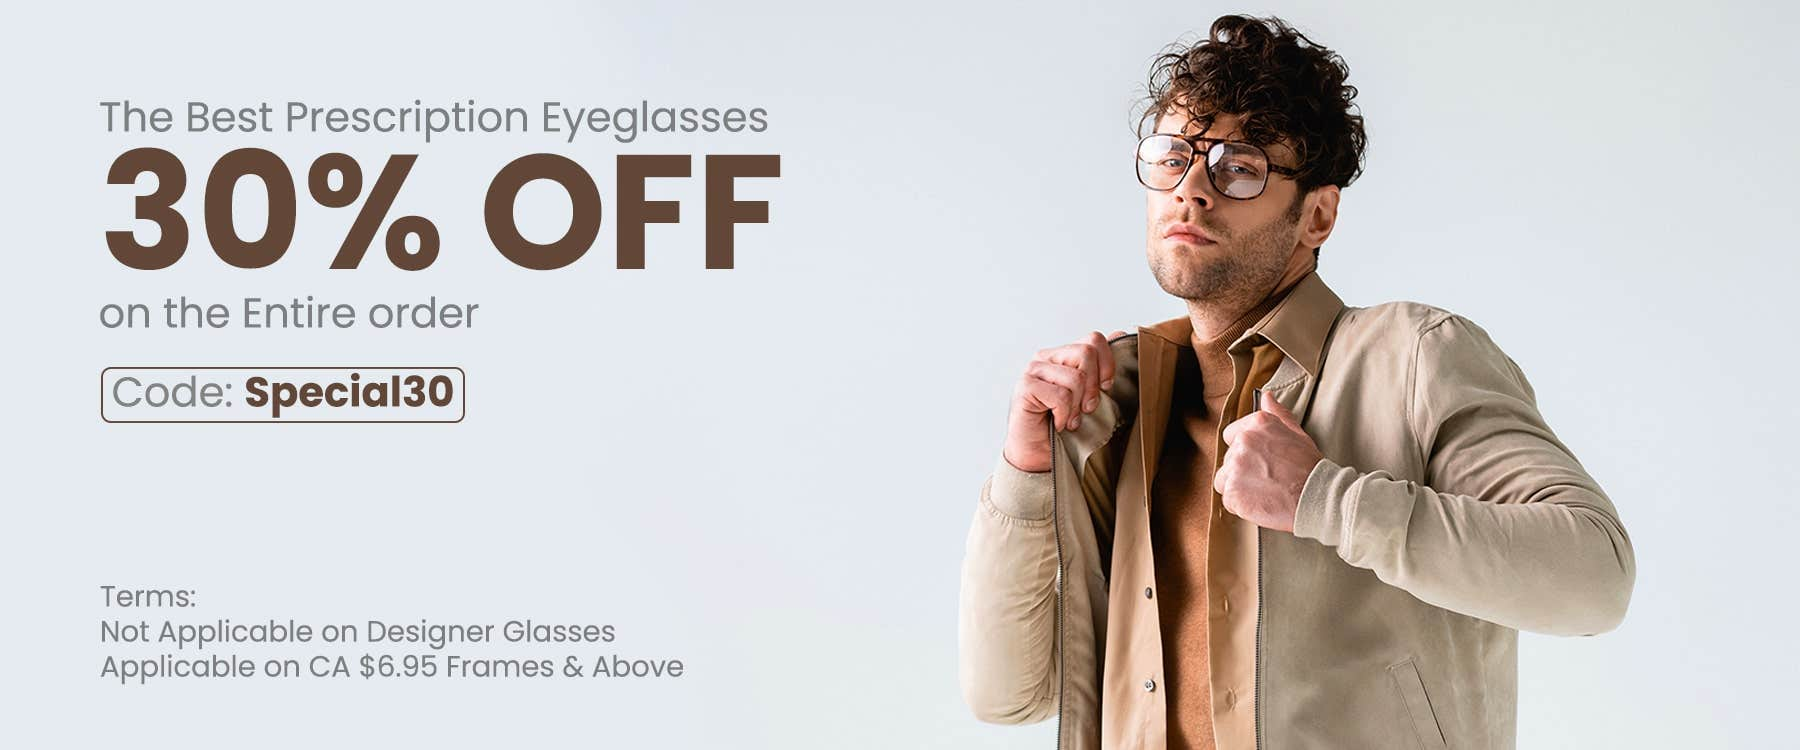 30% OFF On The Entire Order CODE: SPECIAL30